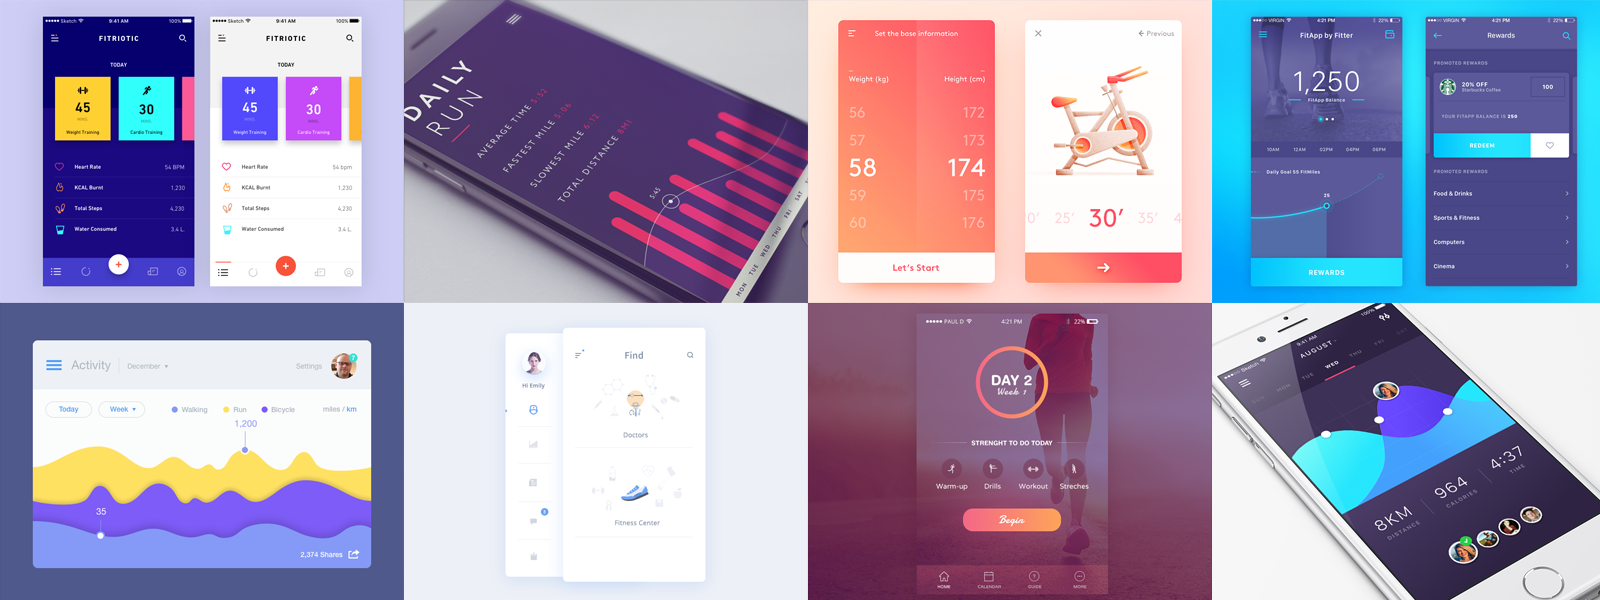 Fitness/Health App — Design Inspiration – Muzli - Design Inspiration